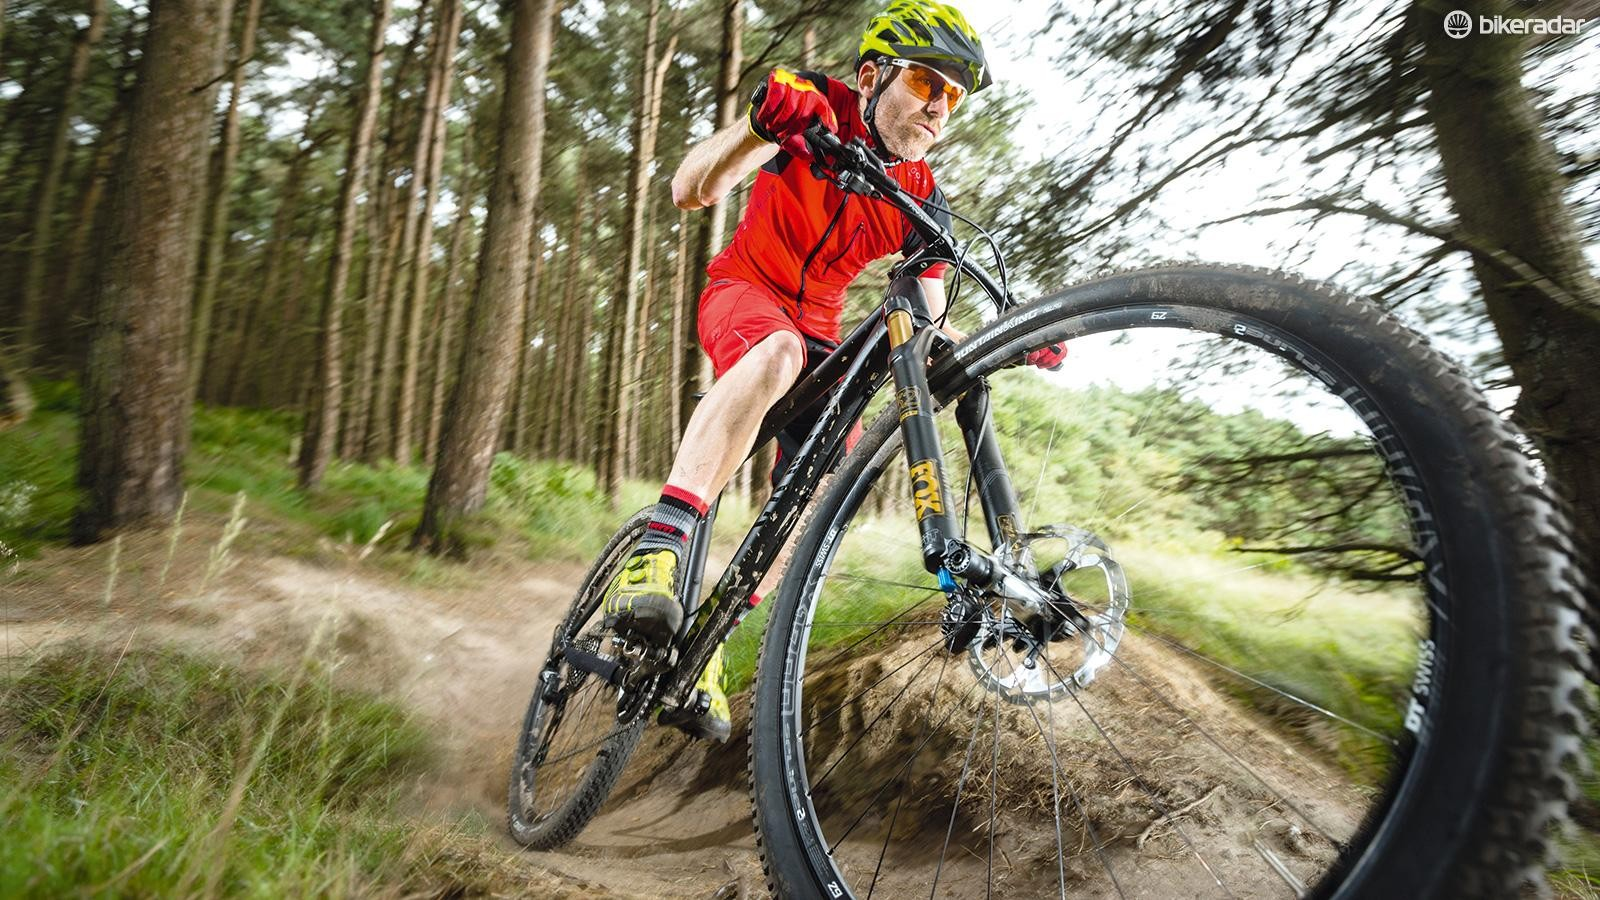 The DT Swiss wheels and Continental RaceSport tyres create light and fast rolling